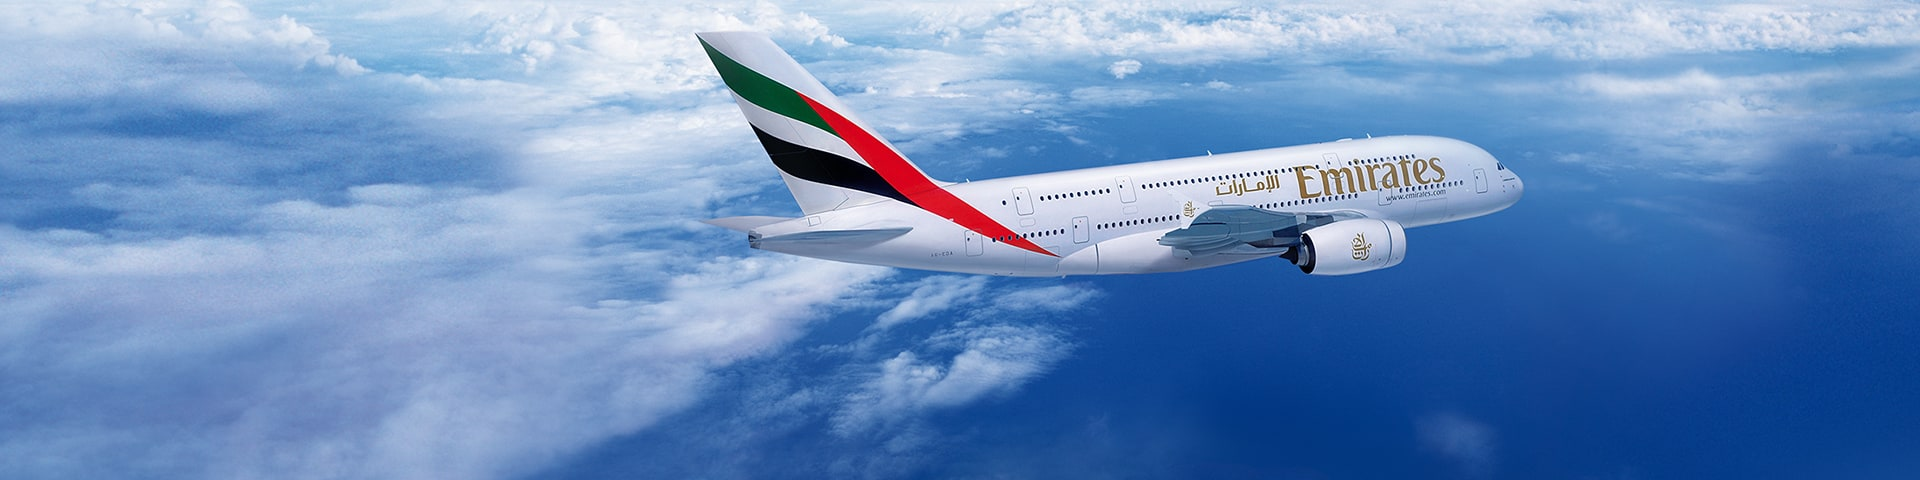 a7477aed69 From June 1st FLY THE A380 From 6 cities